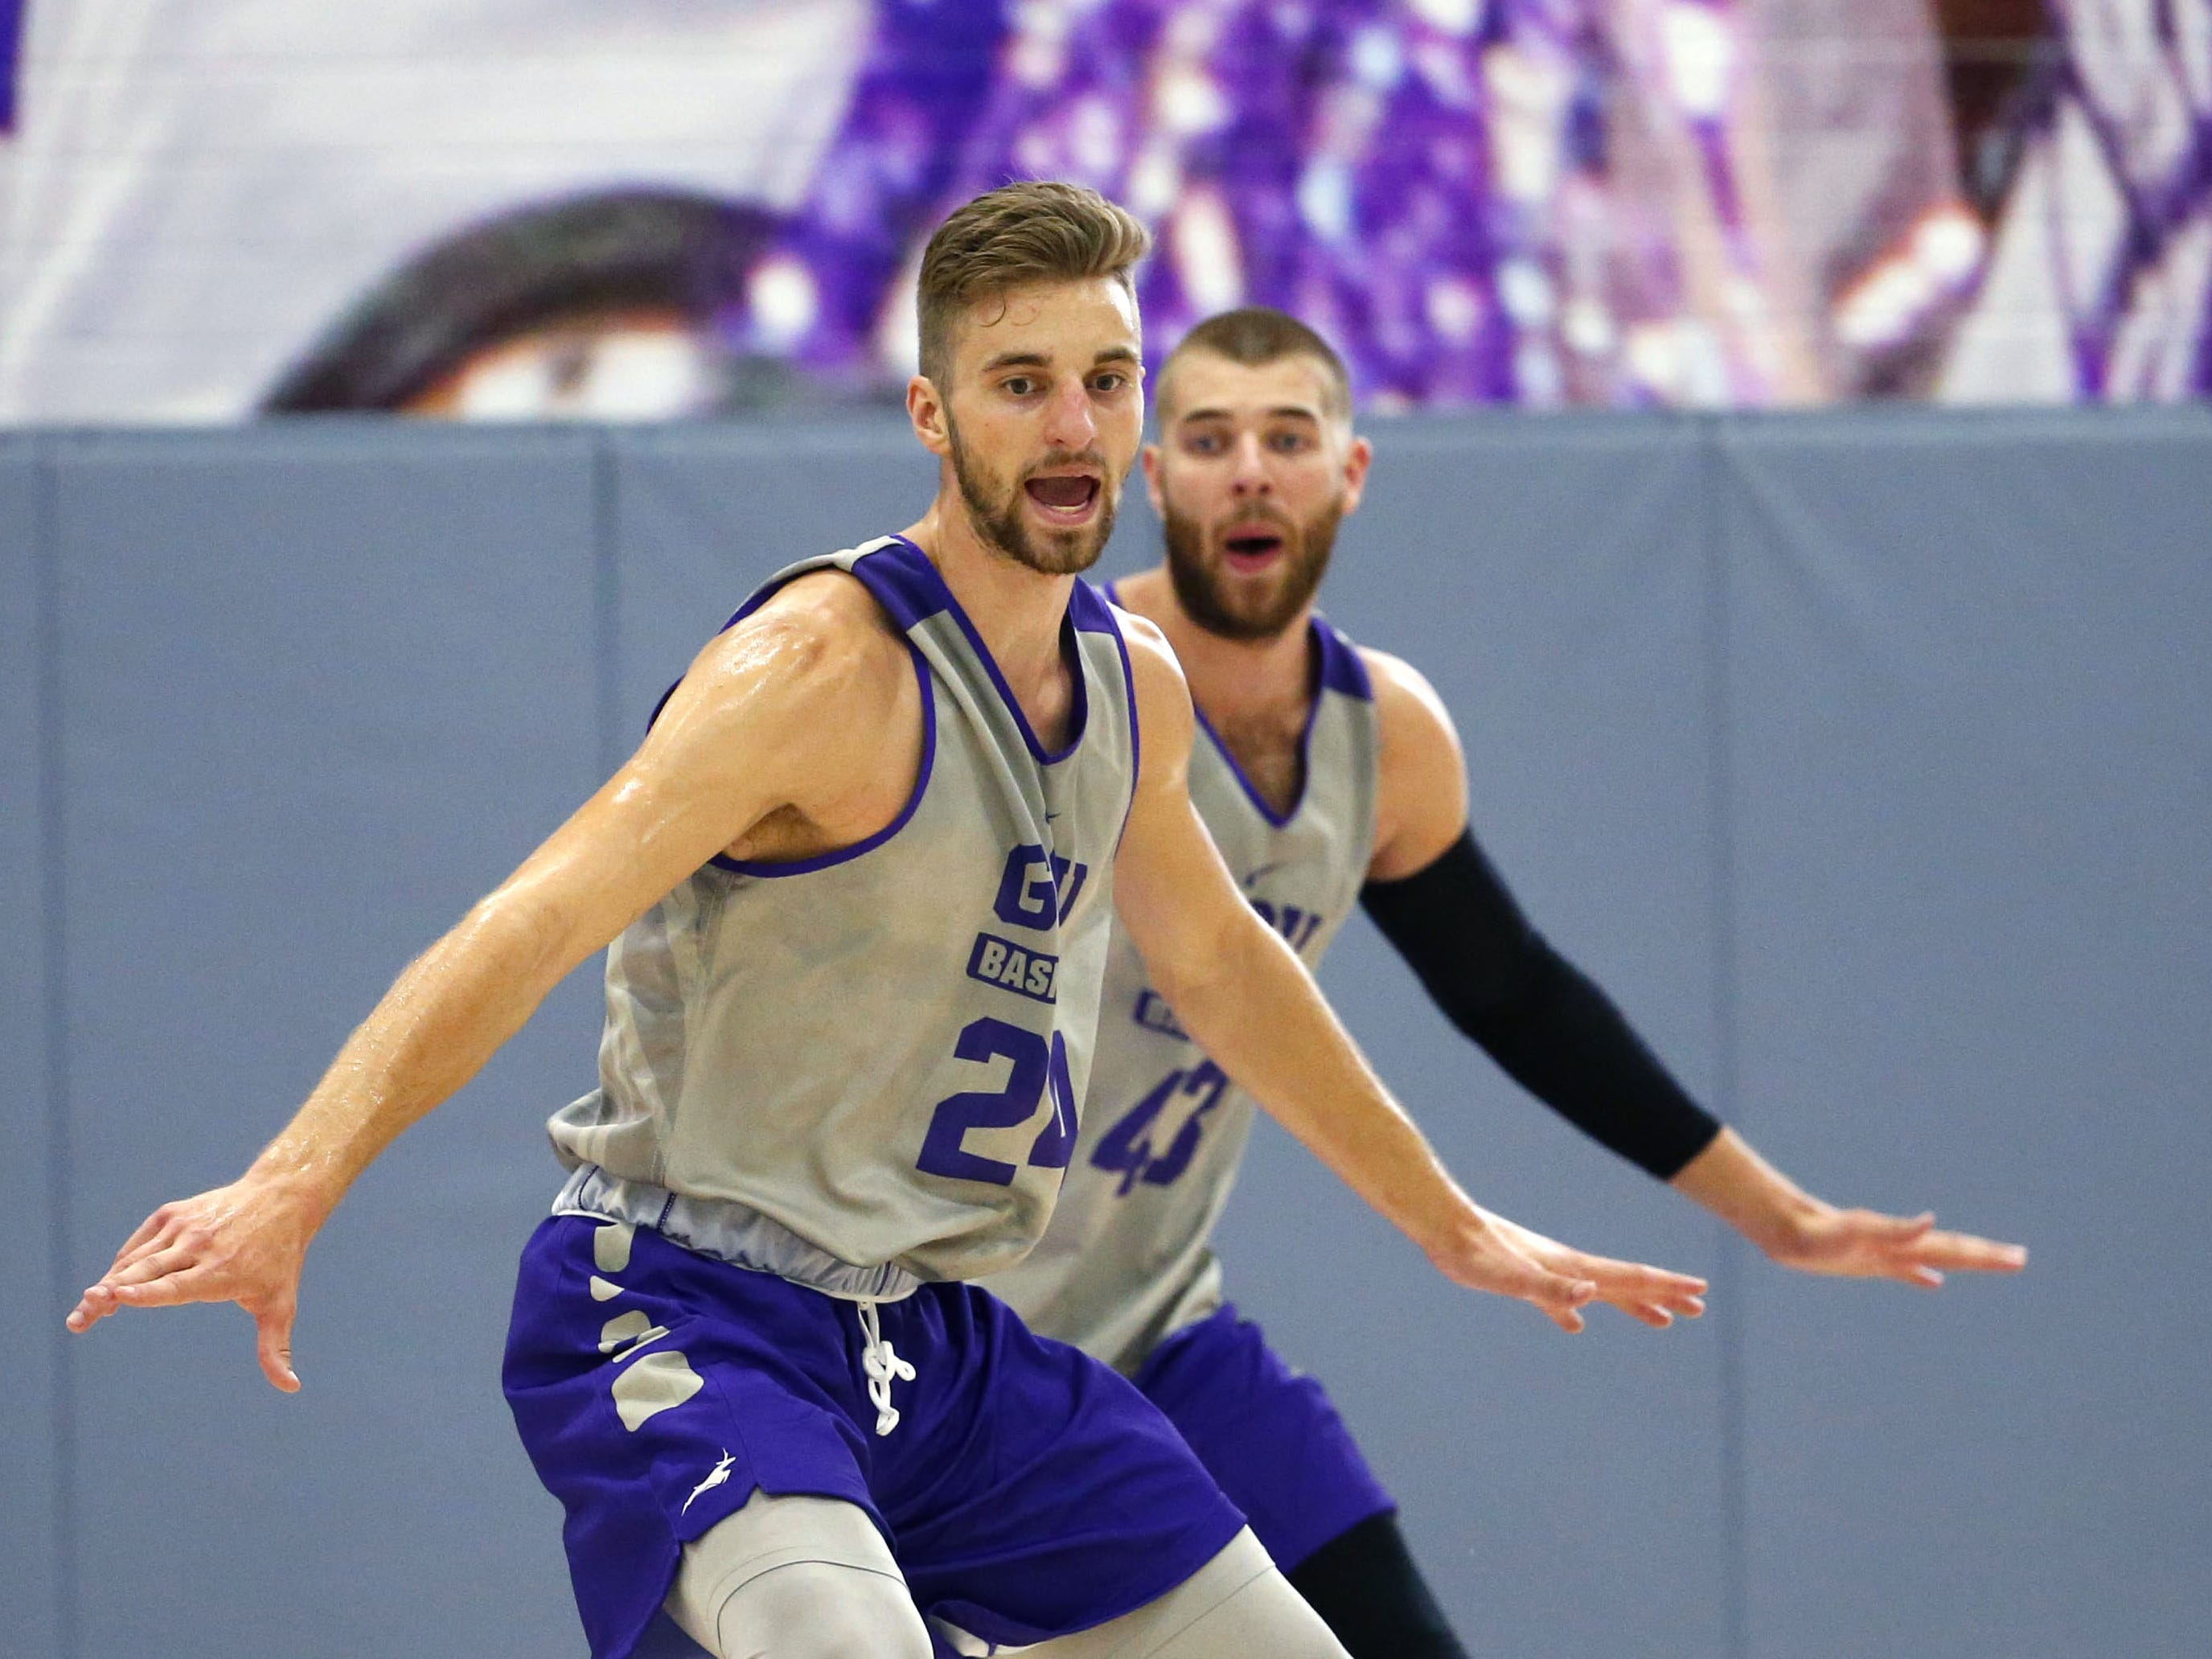 Grand Canyon University's Tim Finke, (24), and Michael Finke, (43),  run a drill during practice in the gym in Phoenix on September 26,  2018.